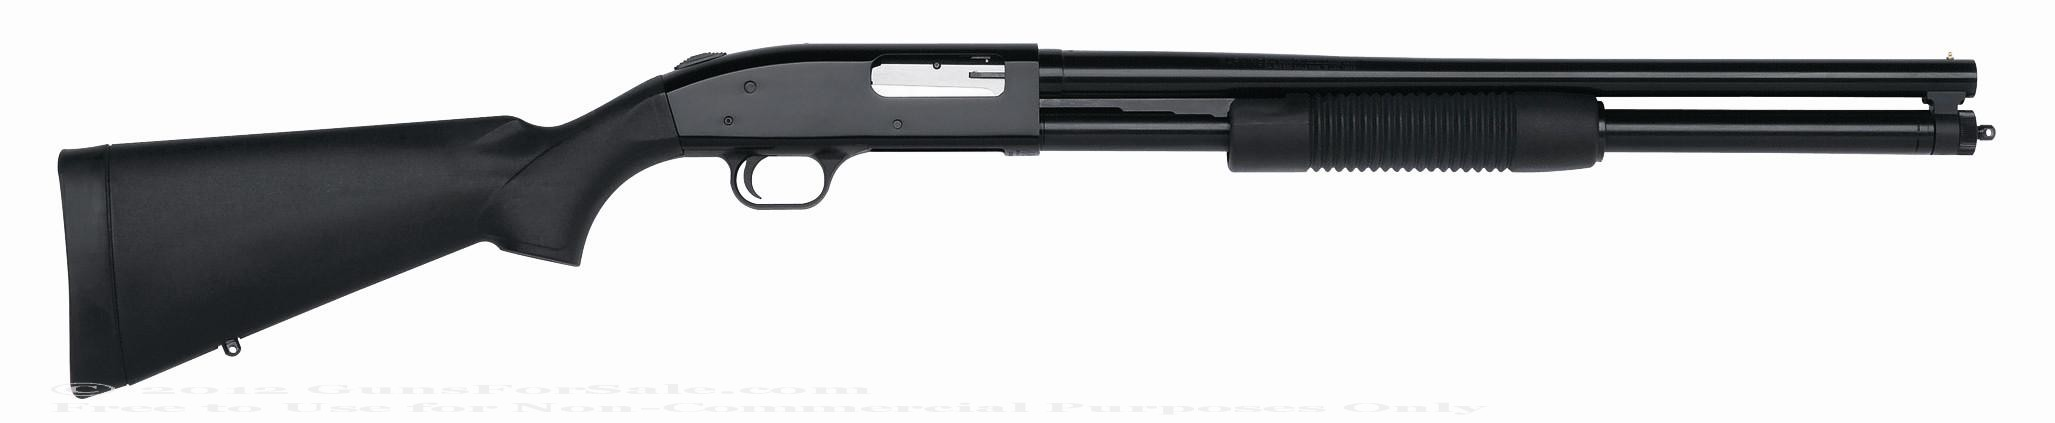 Mossberg 500SP Shotgun For Sale